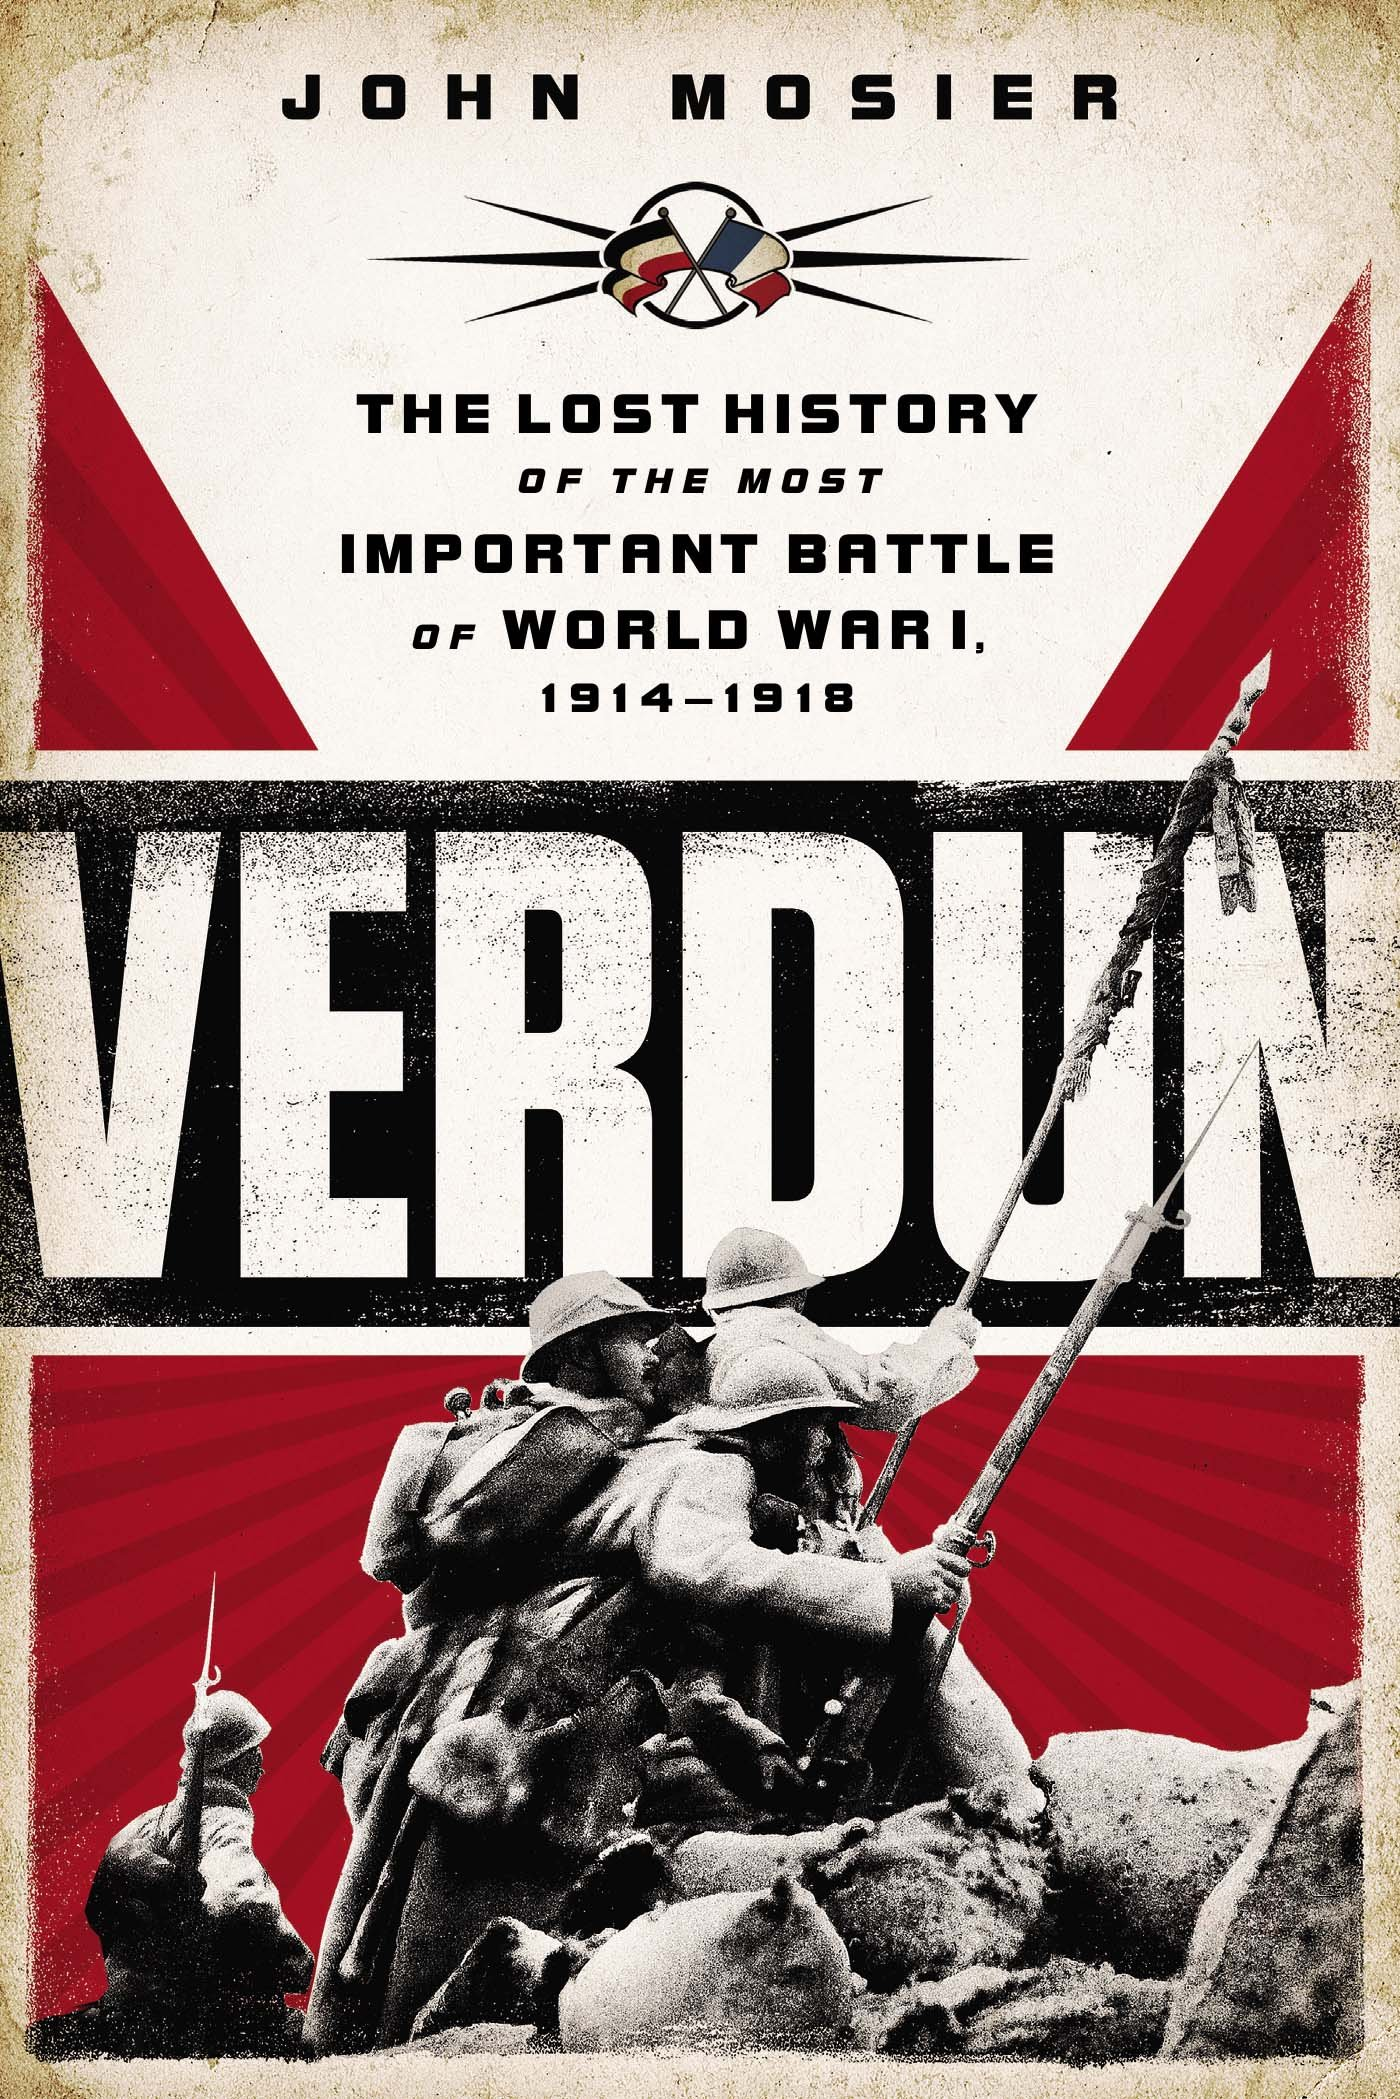 the most crucial battle of the second world war Written by steven w gephart, narrated by neil reeves download the app and start listening to world war ii: the most important events, leaders, and battles that shaped the second world war today - free with a 30 day trial.